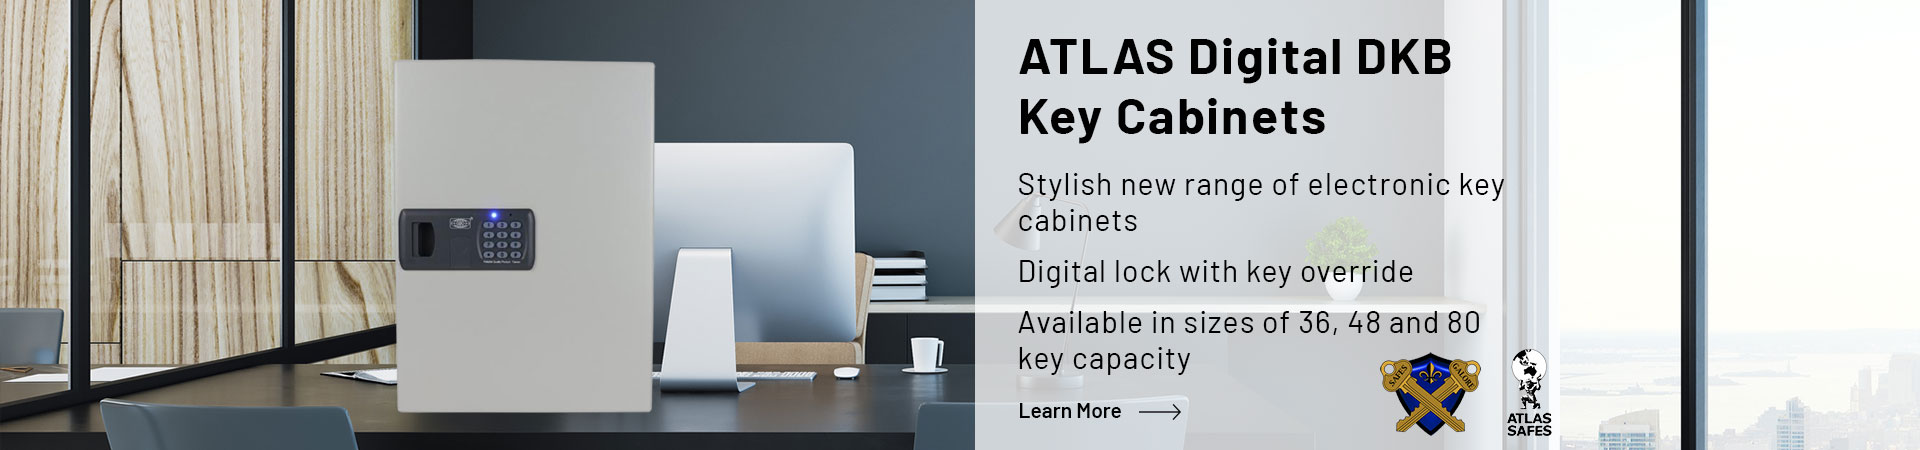 Learn more about the Atlas Digital DKB Key Cabinets